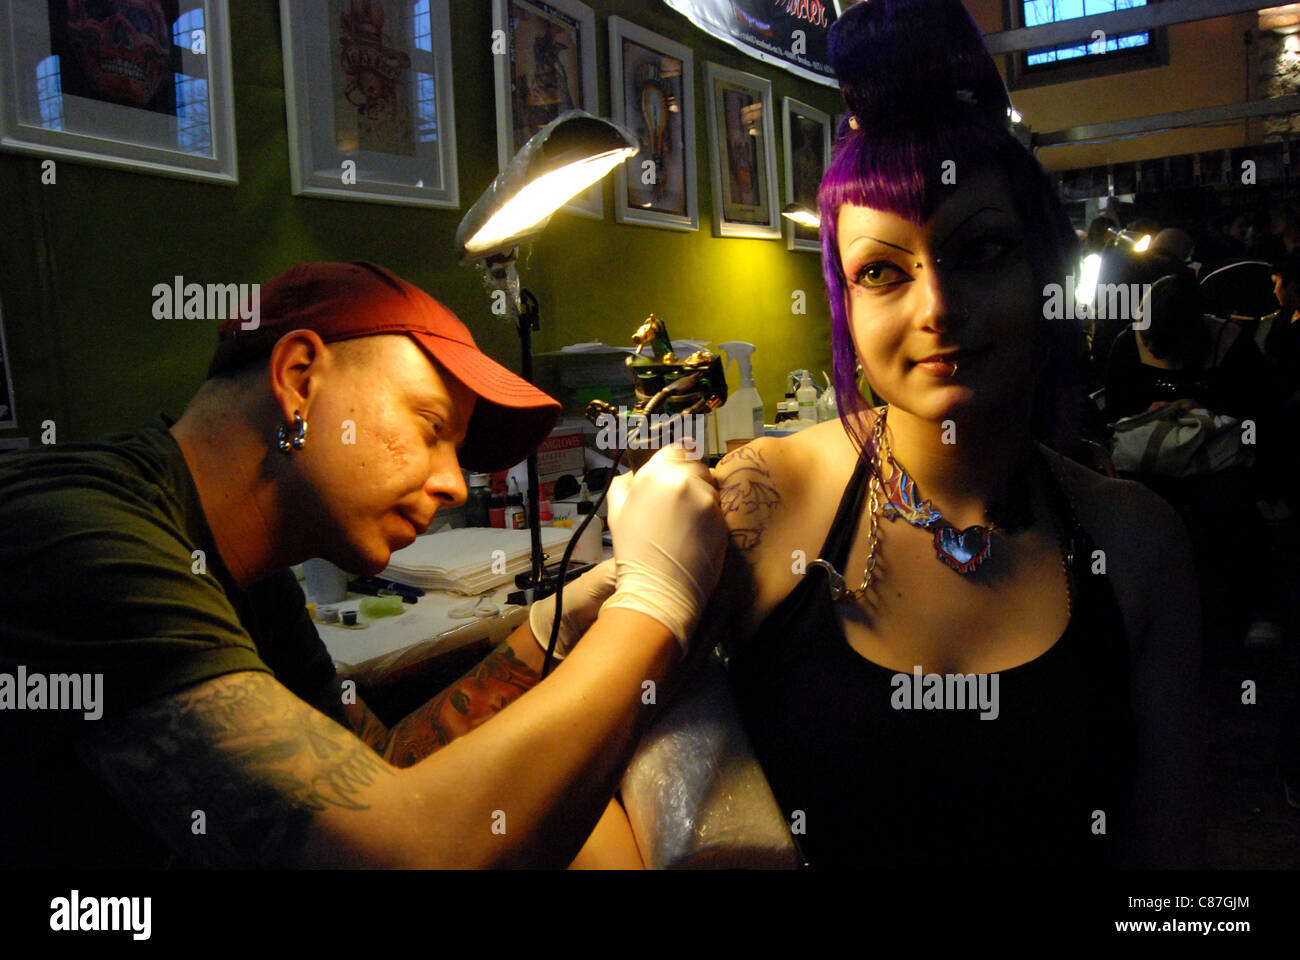 A man tattooing a cemetary scene on the arm of a woman Stock Photo